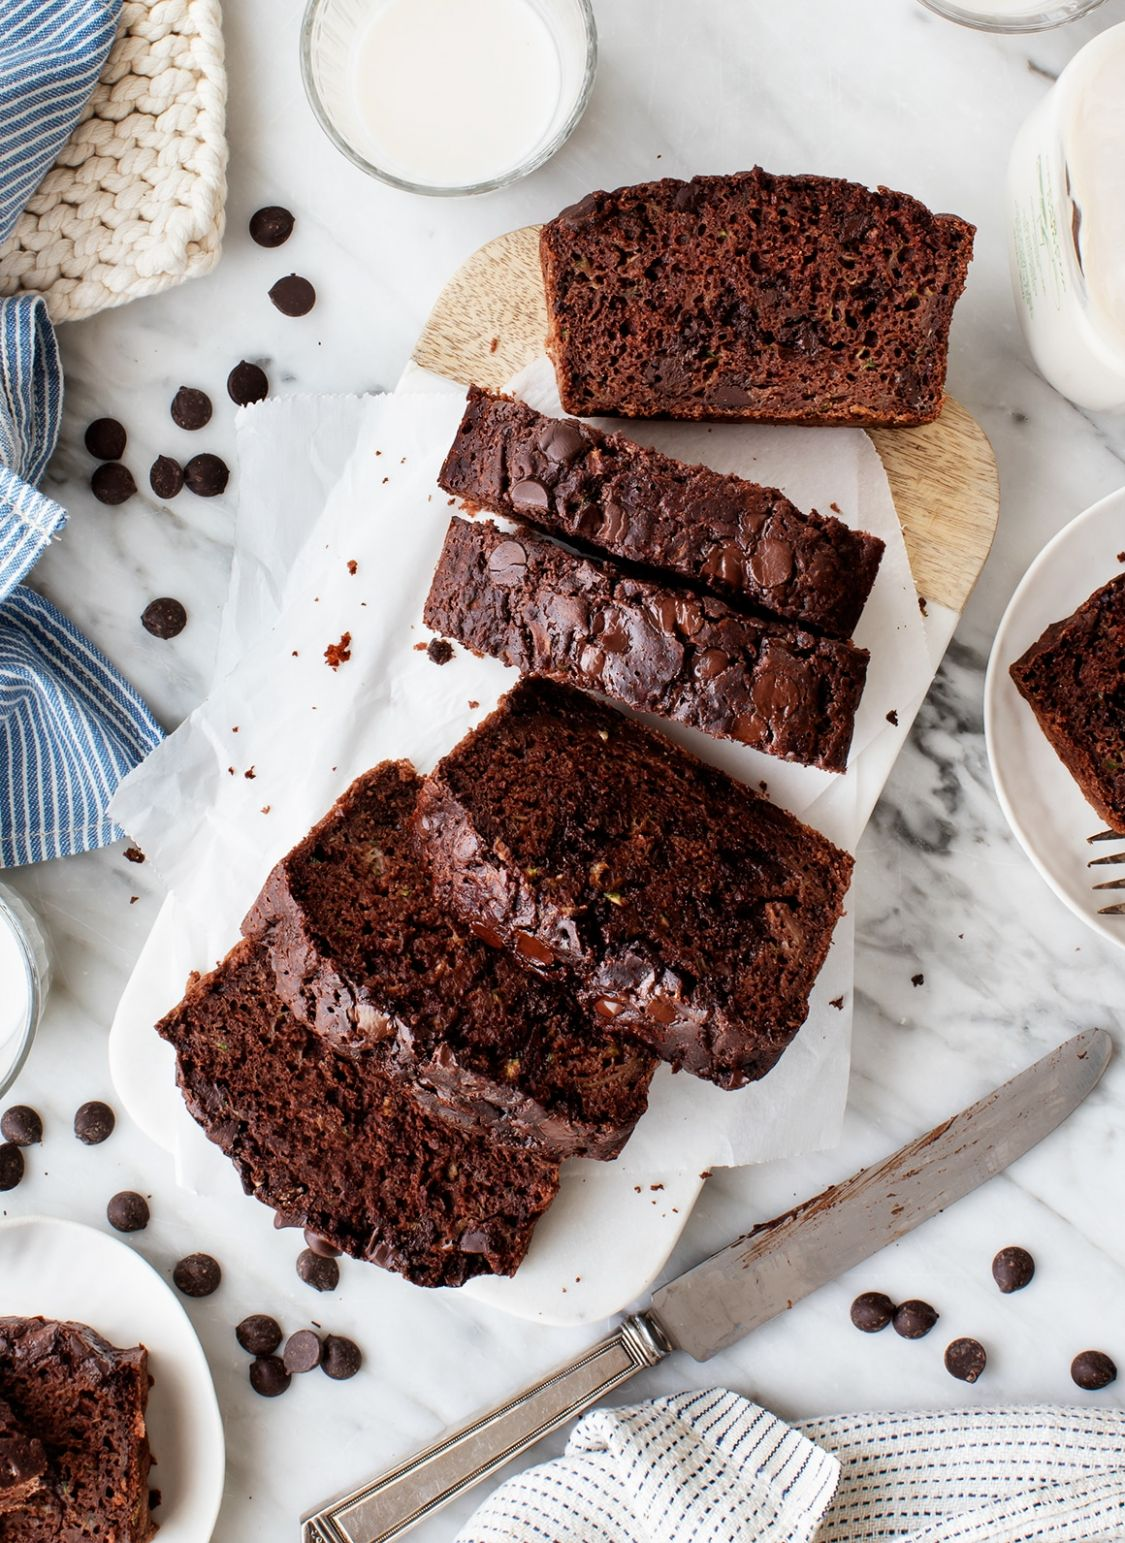 Chocolate Zucchini Bread - Recipes Chocolate Zucchini Bread